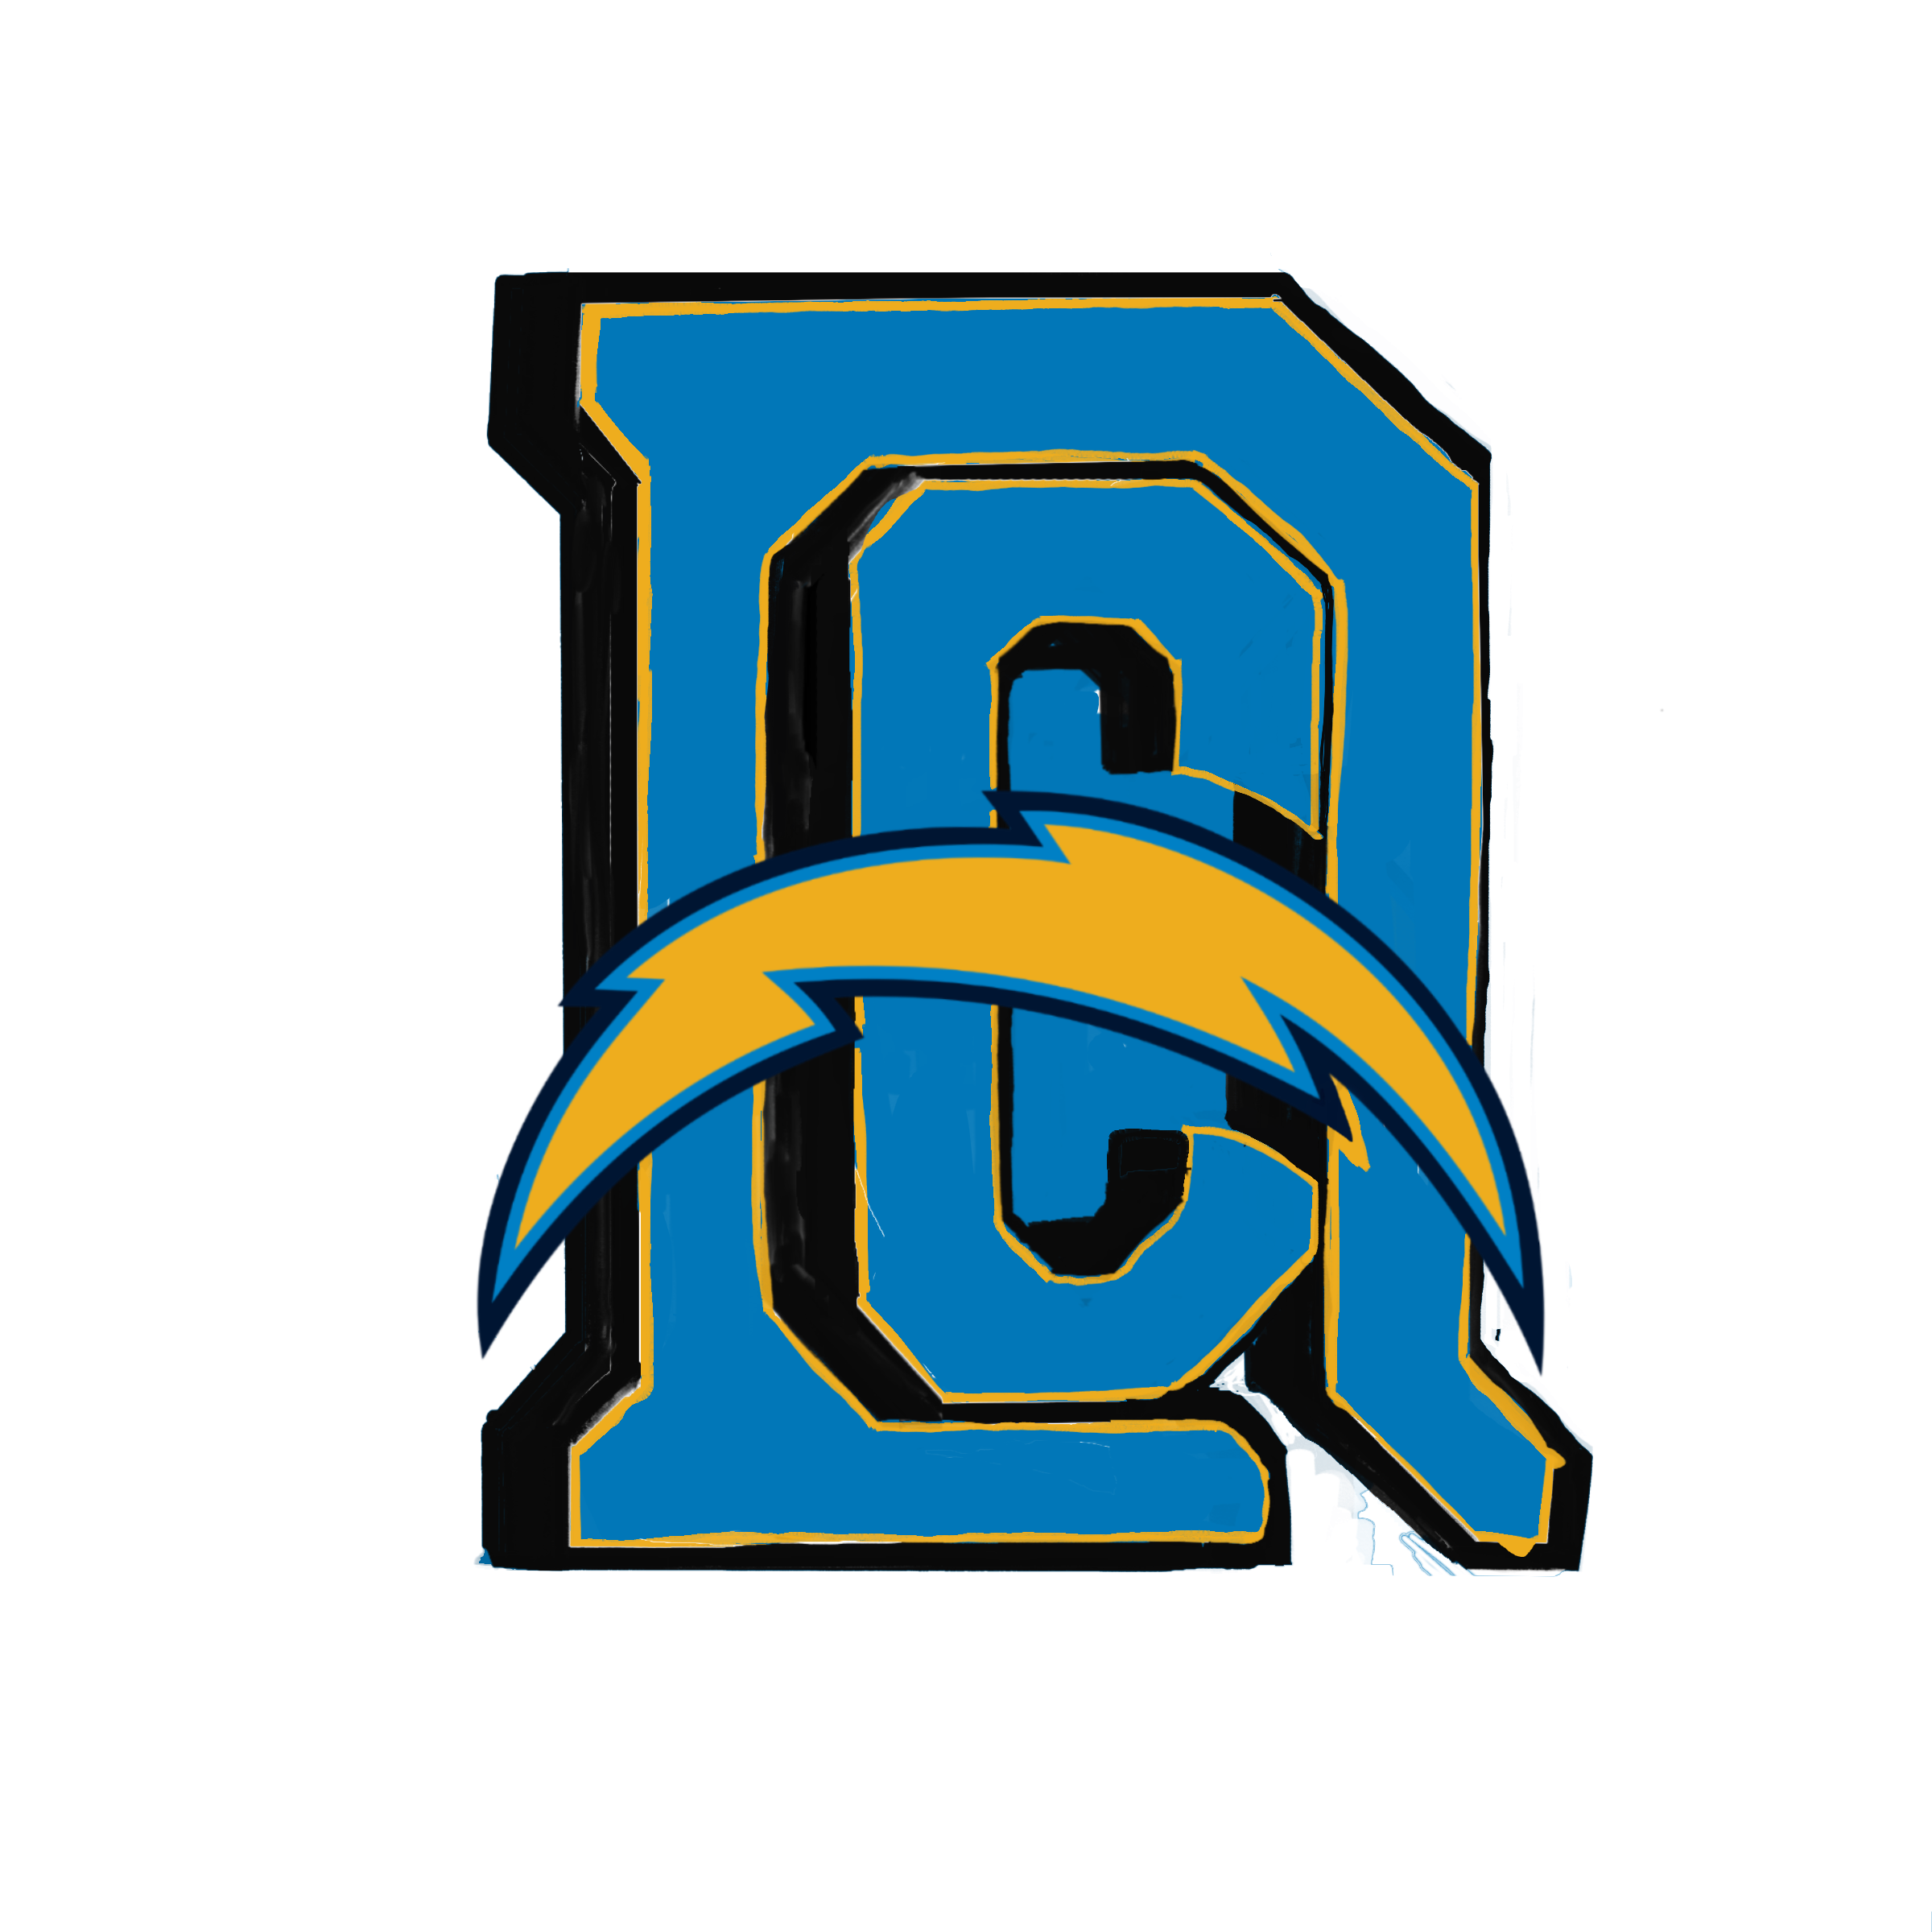 Los Angeles Chargers Logo Los Angeles Chargers Logo Los Angeles Chargers Los Angeles